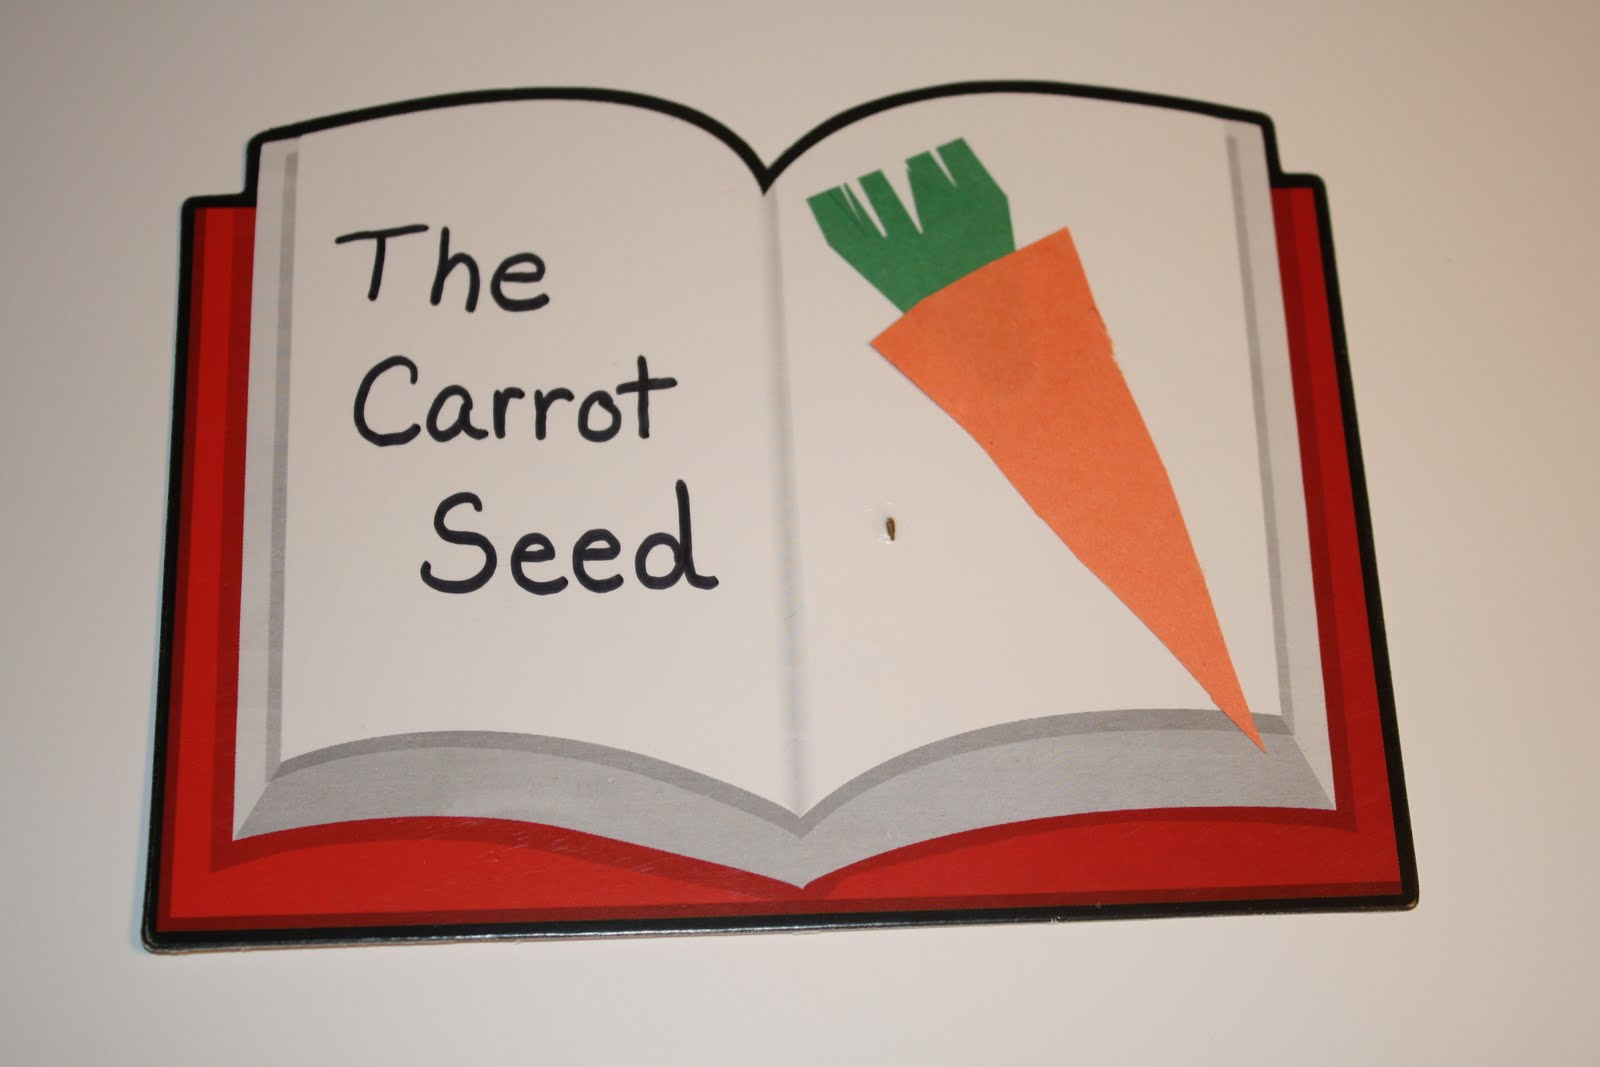 Pencils Proverbs Pandemonium Amp Pins The Carrot Seed